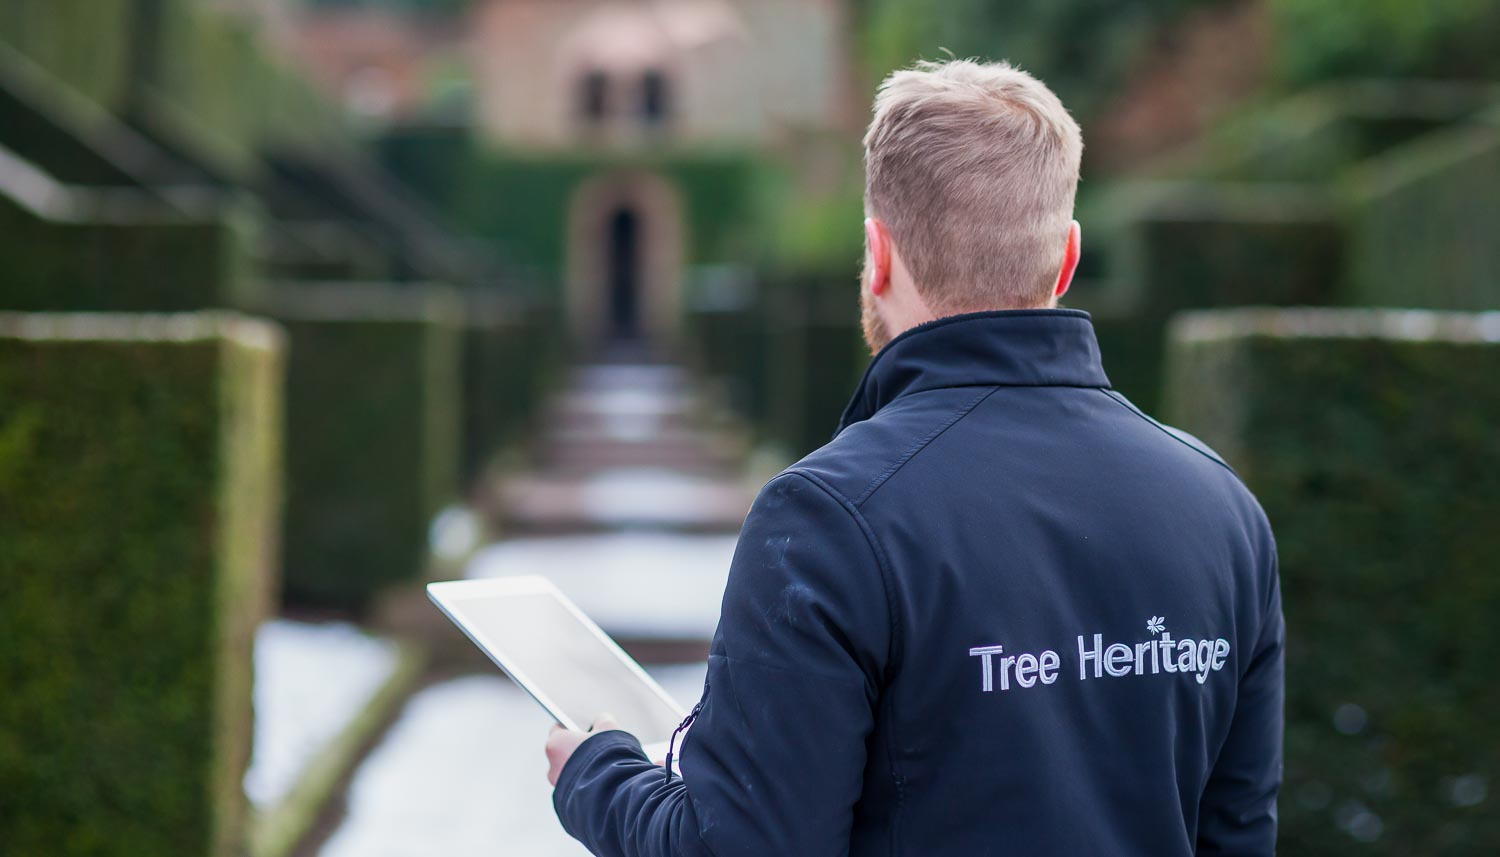 nationwide tree surveys, plans, reports for mortgages and insurance